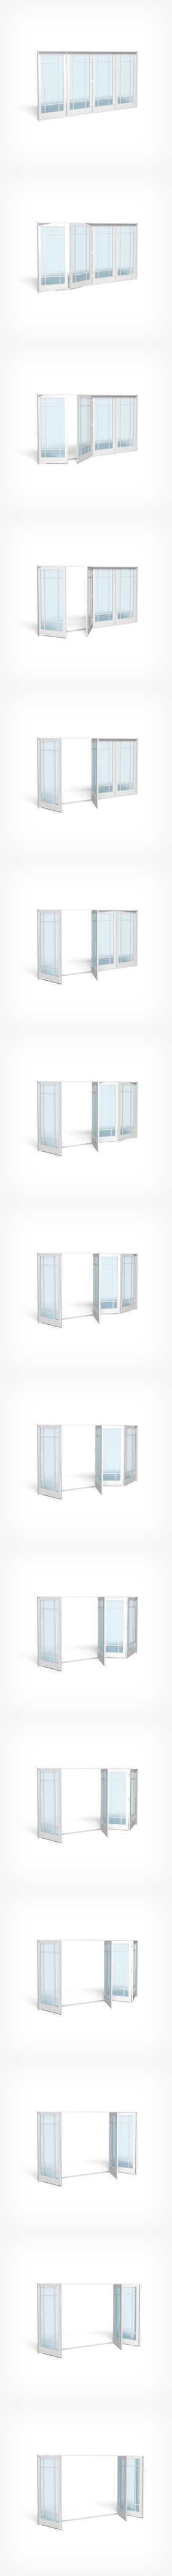 Exterior single french doors viewing gallery